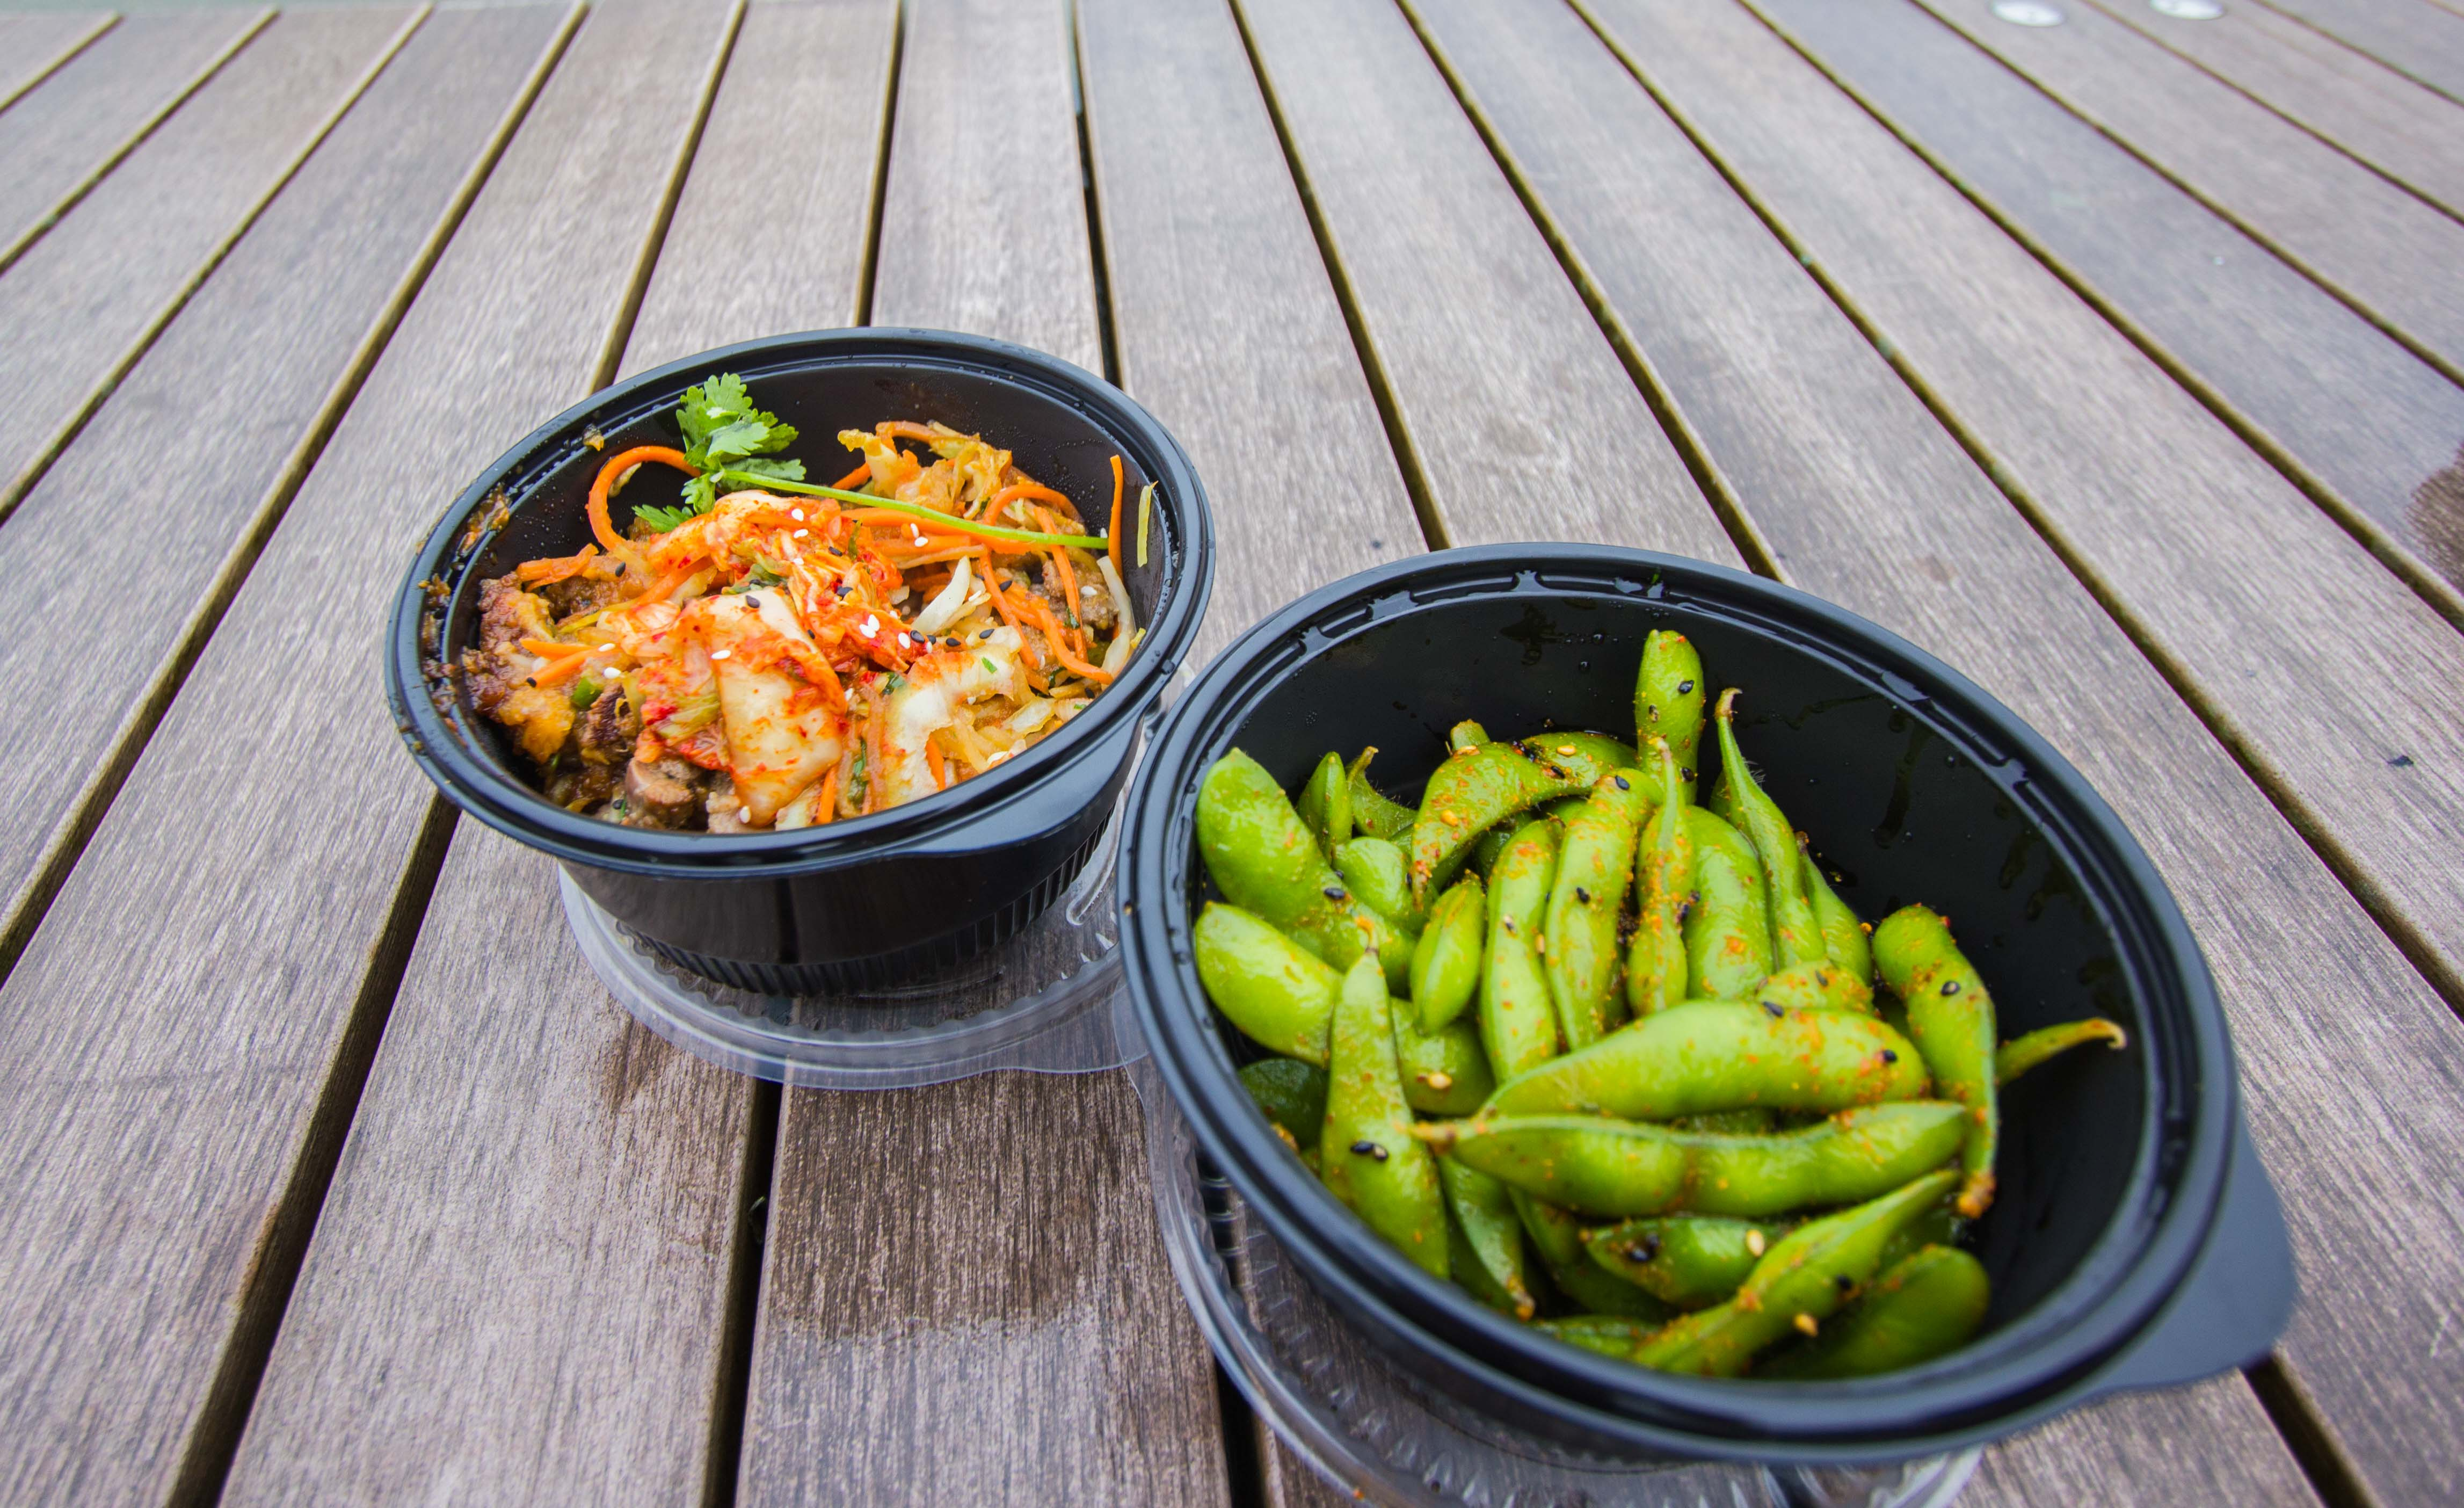 Bulgogi beef bowl on the left, spicy steamed edamame on the right.